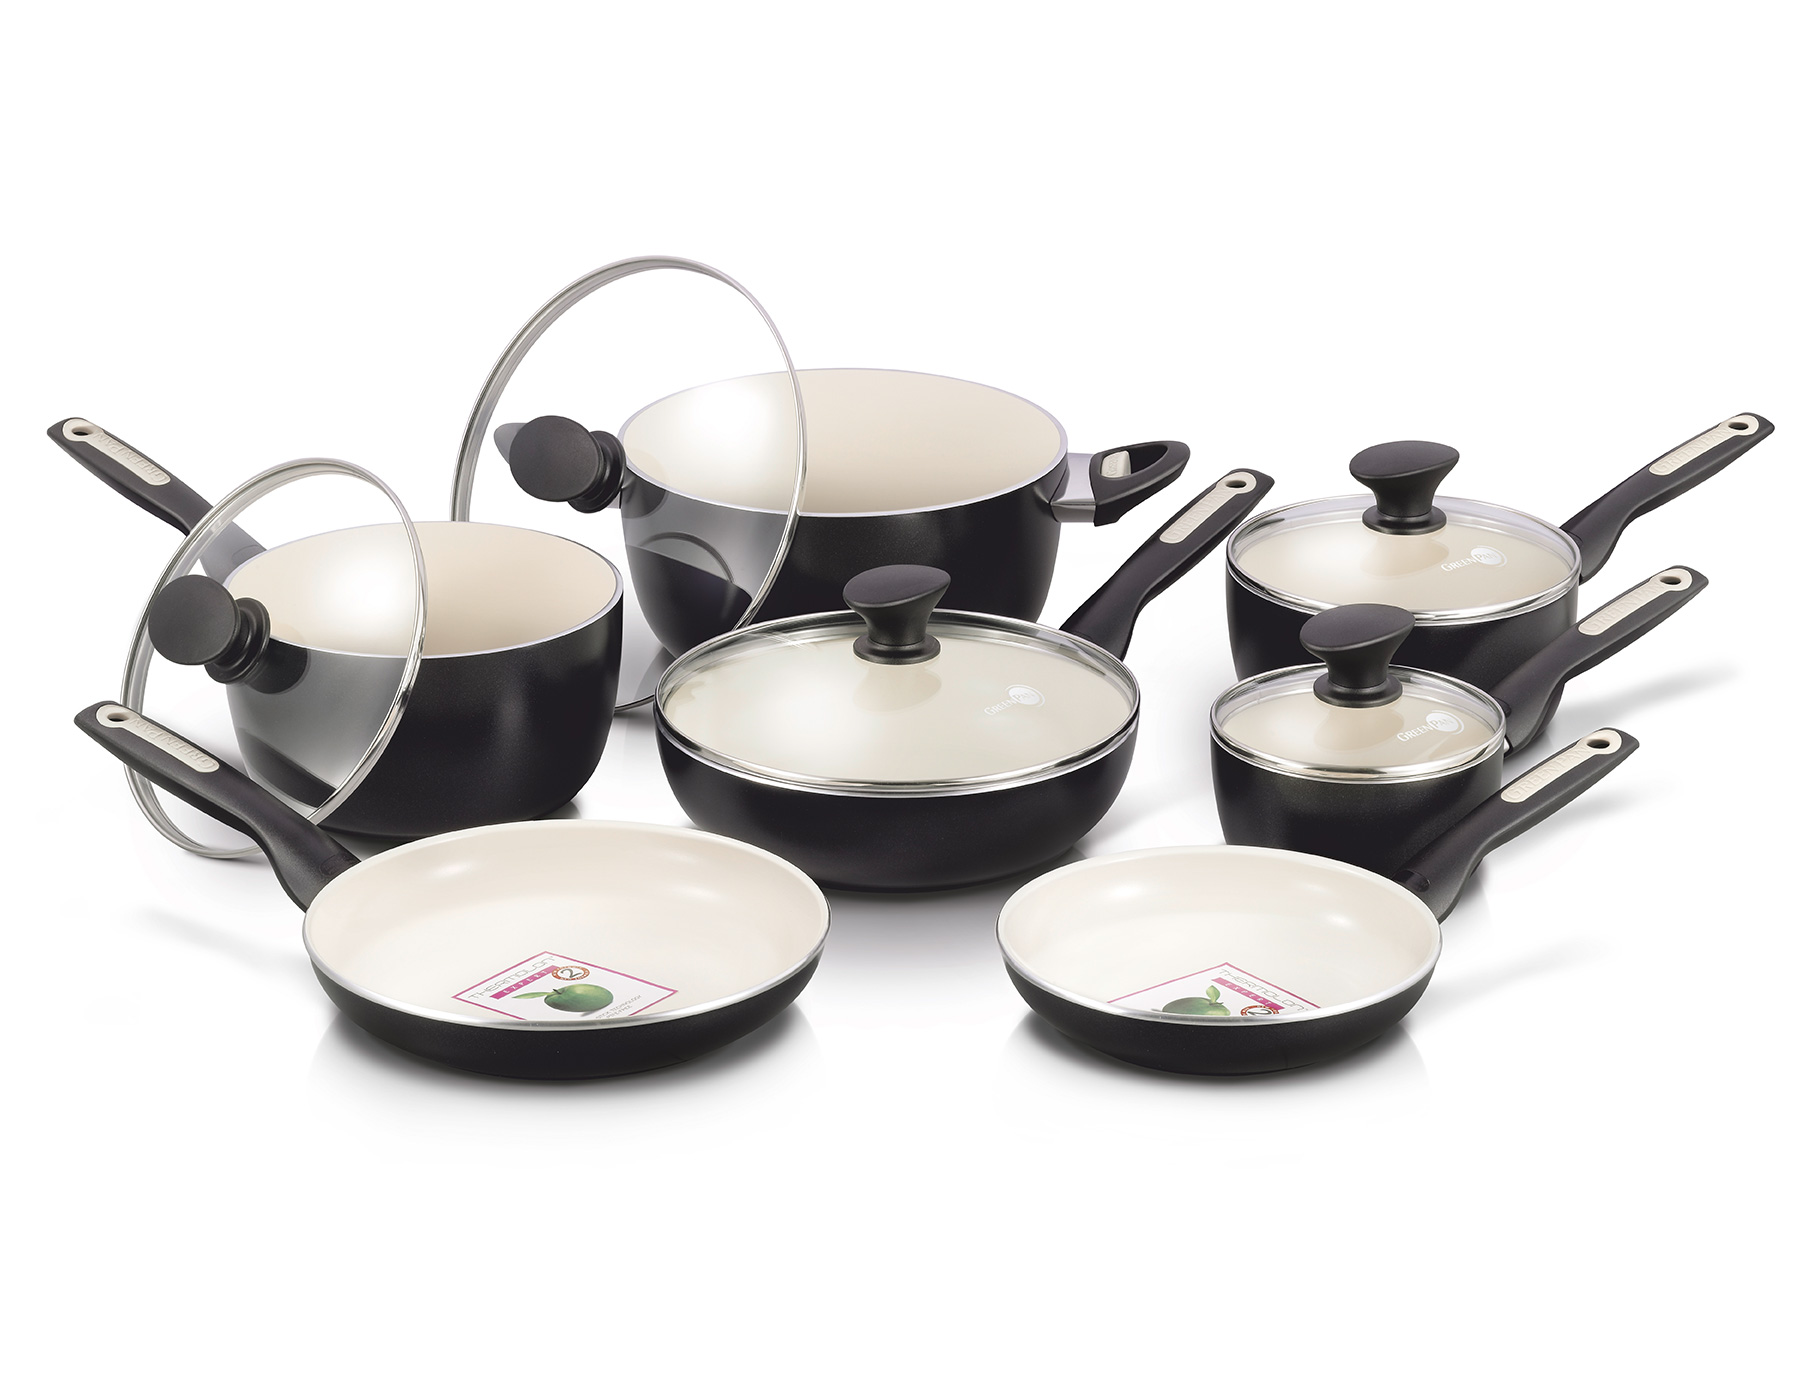 Best Ceramic Cookware Sets To Buy In 2019 A Very Cozy Home